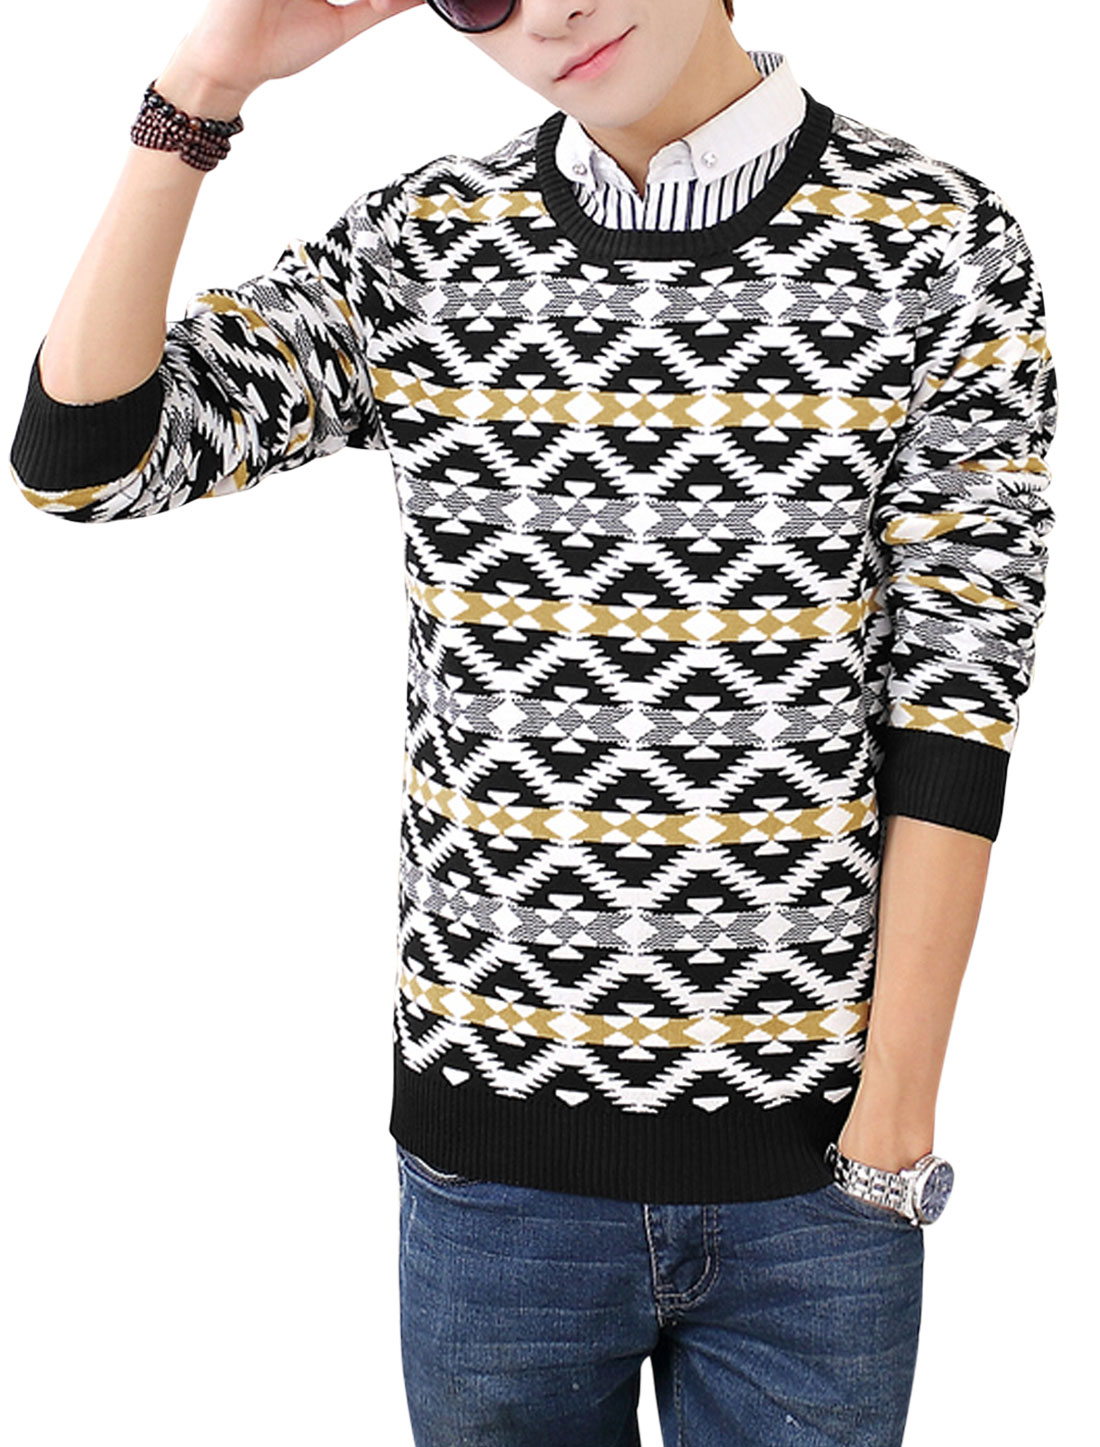 Men Round Neck Long Sleeves Geometric Prints Slipover Knit Top Black White S